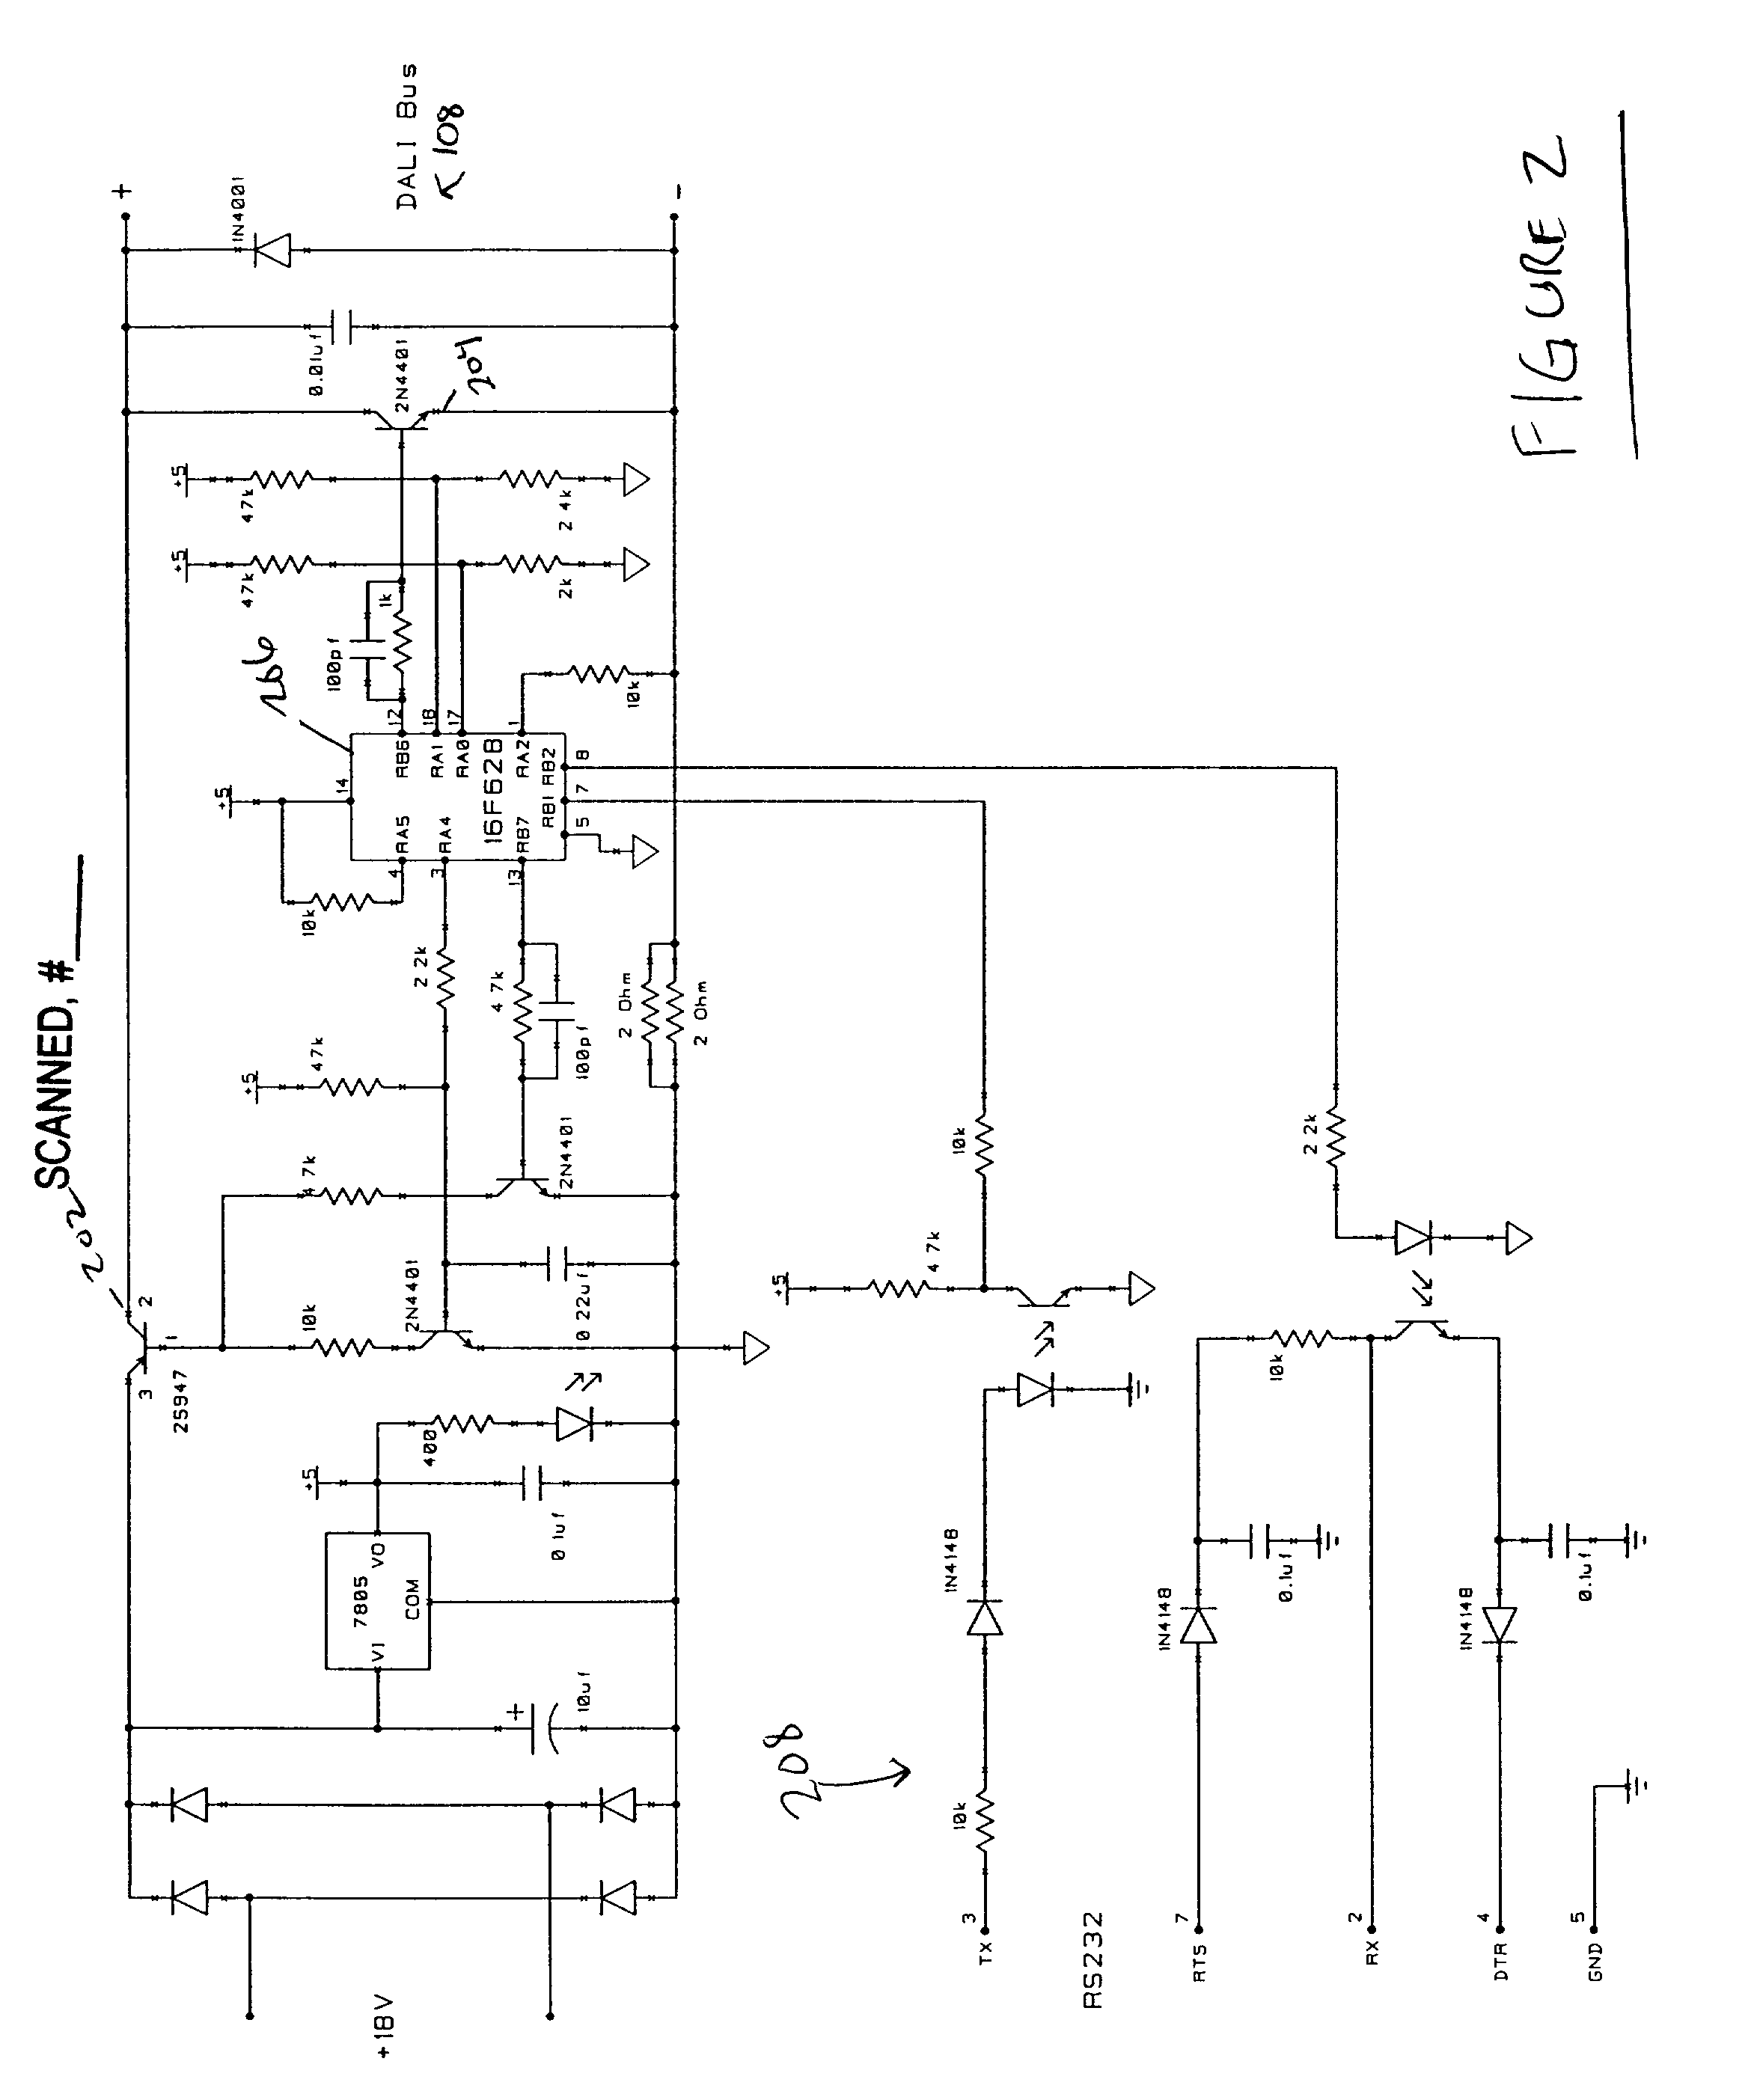 Dali Ballast Wiring Diagram Lighting Control Solutions Light Diagrams 2 Images Of Pictures